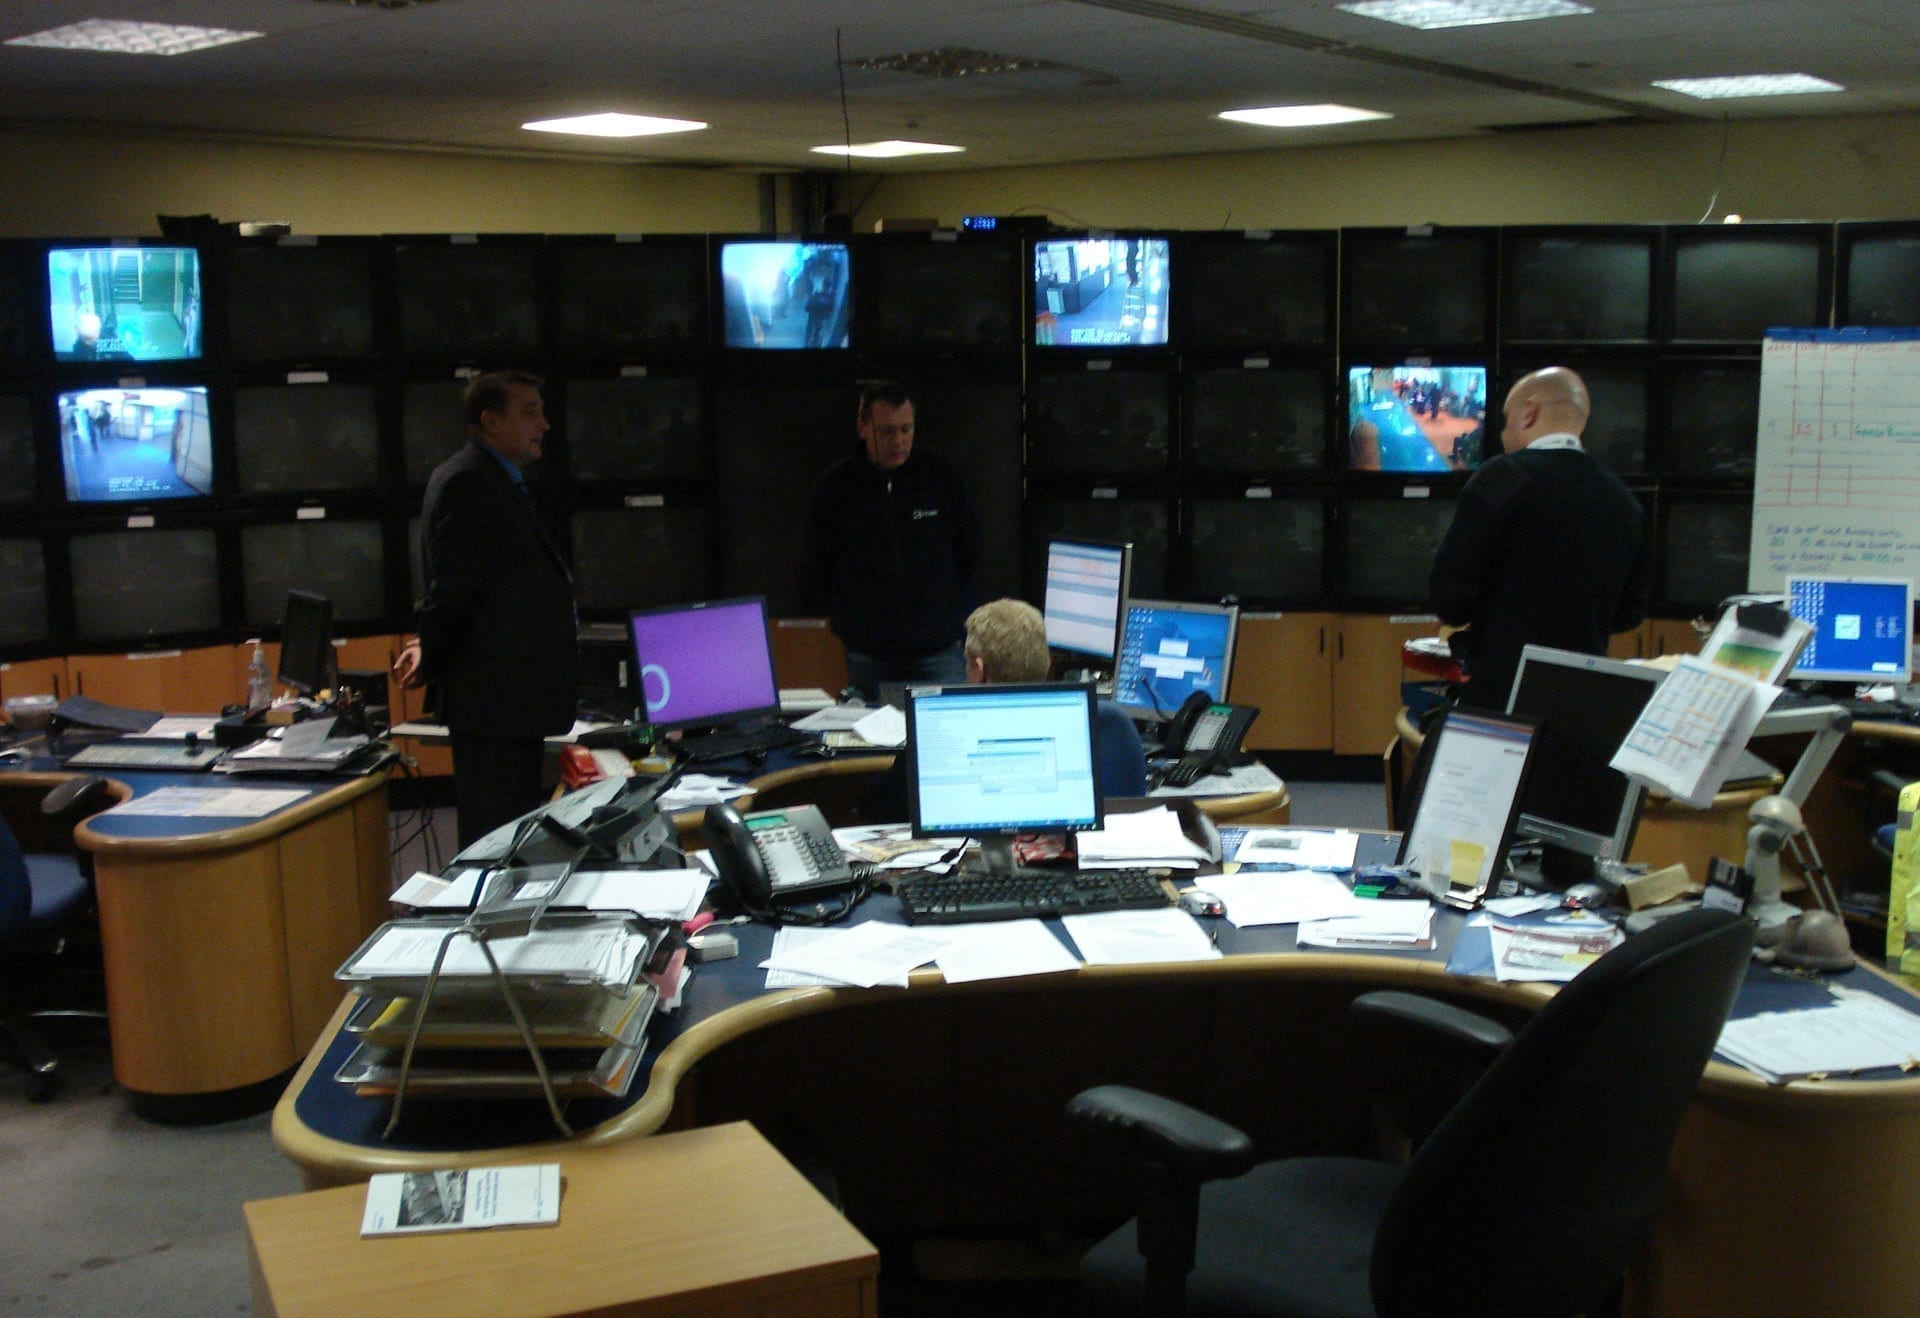 Manchester MRI control room before